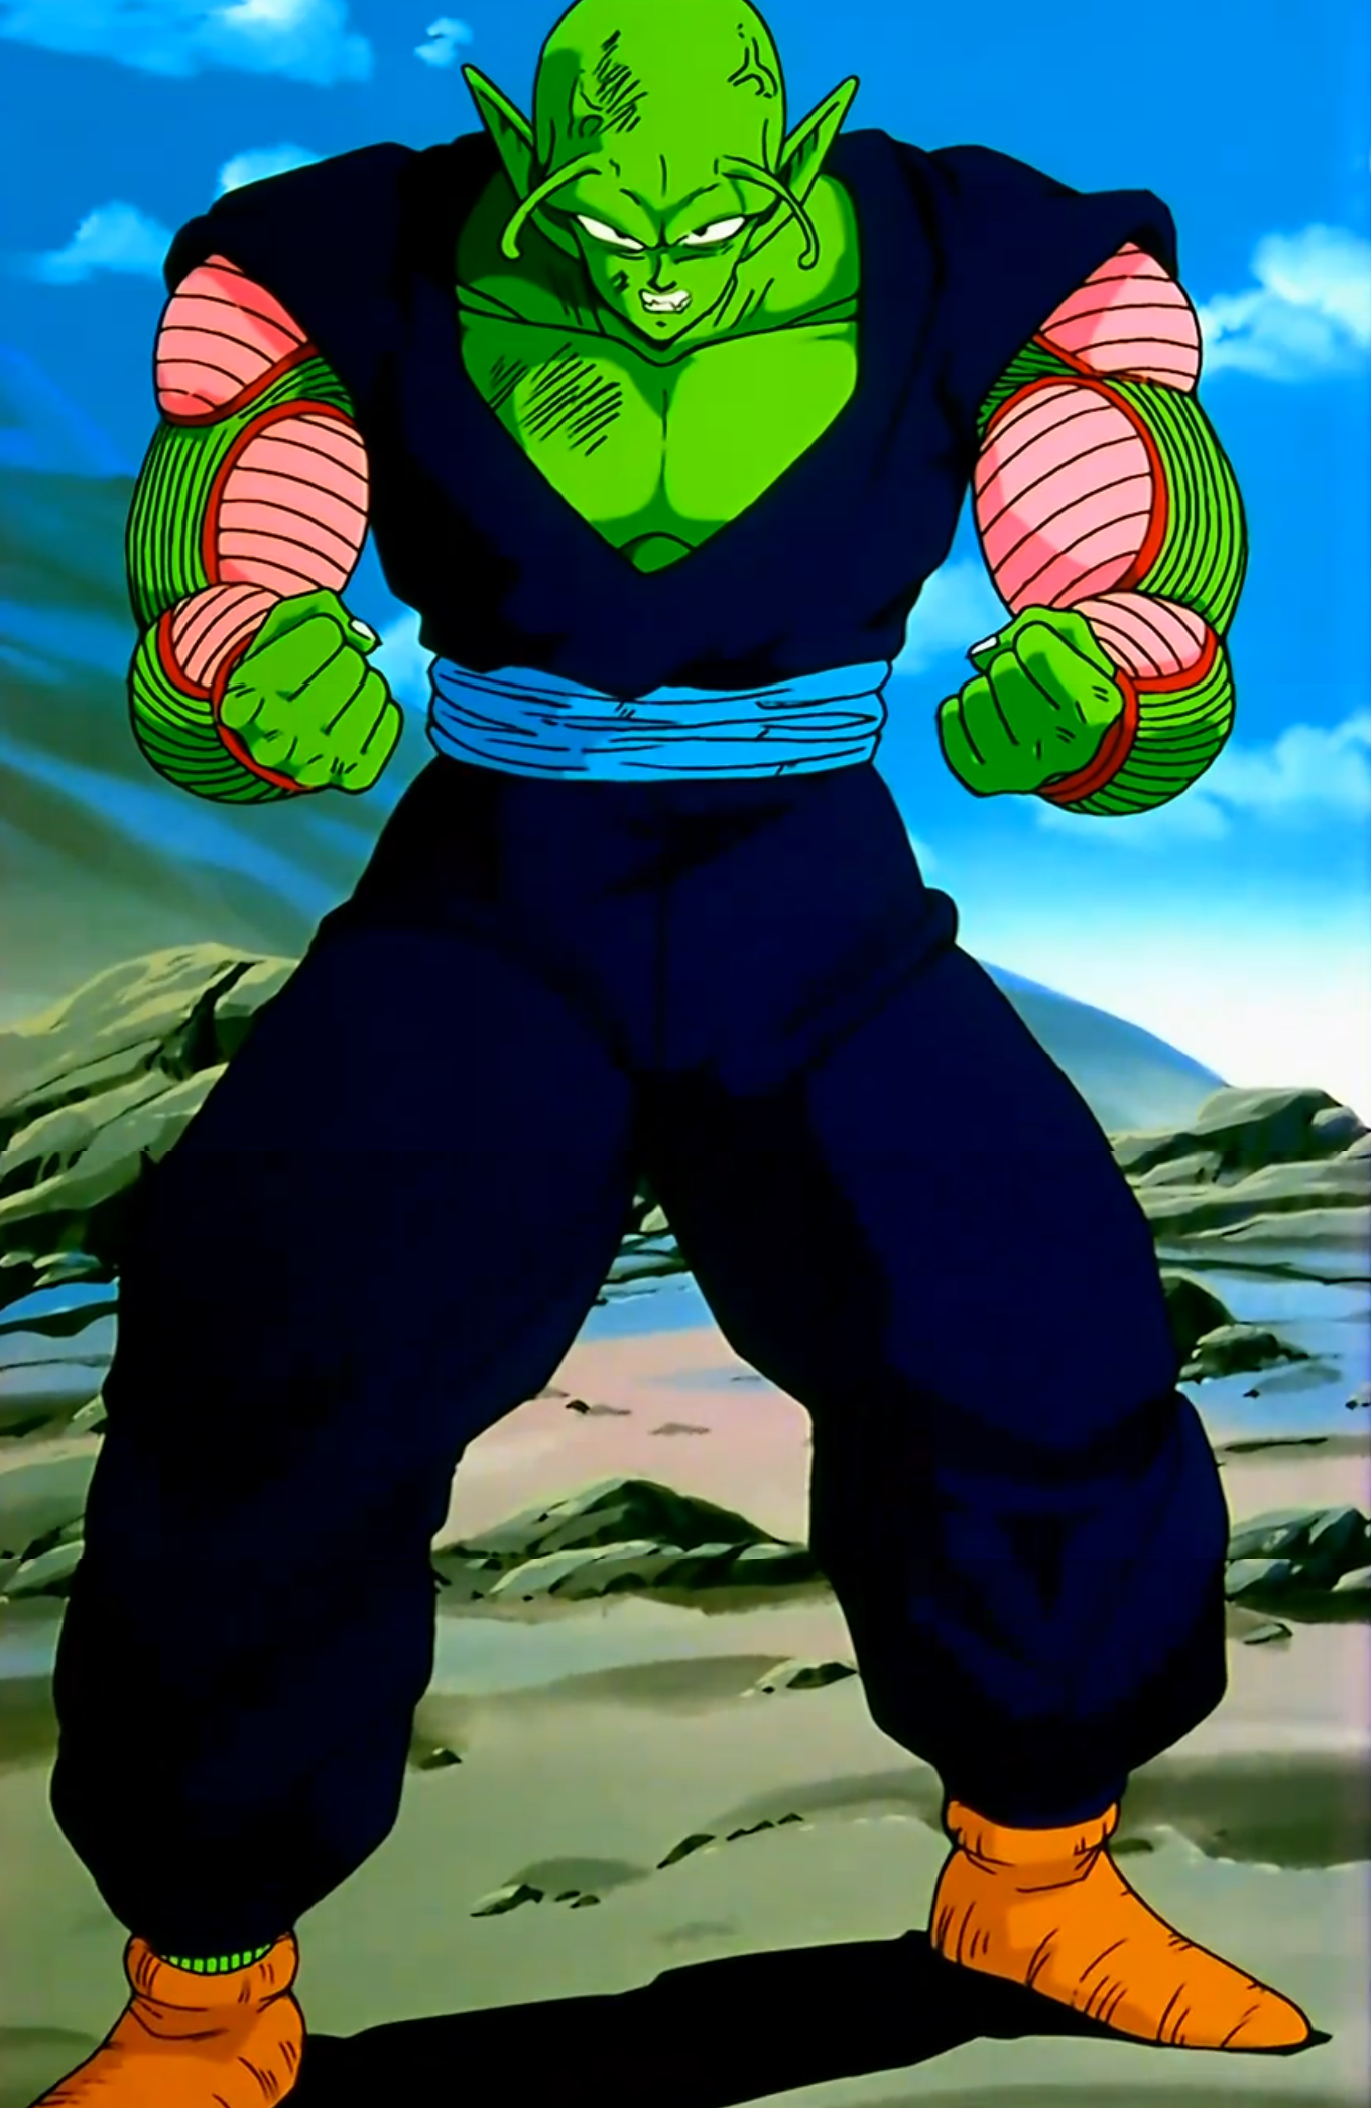 Super Namekian | Dragon Ball Wiki | FANDOM powered by Wikia